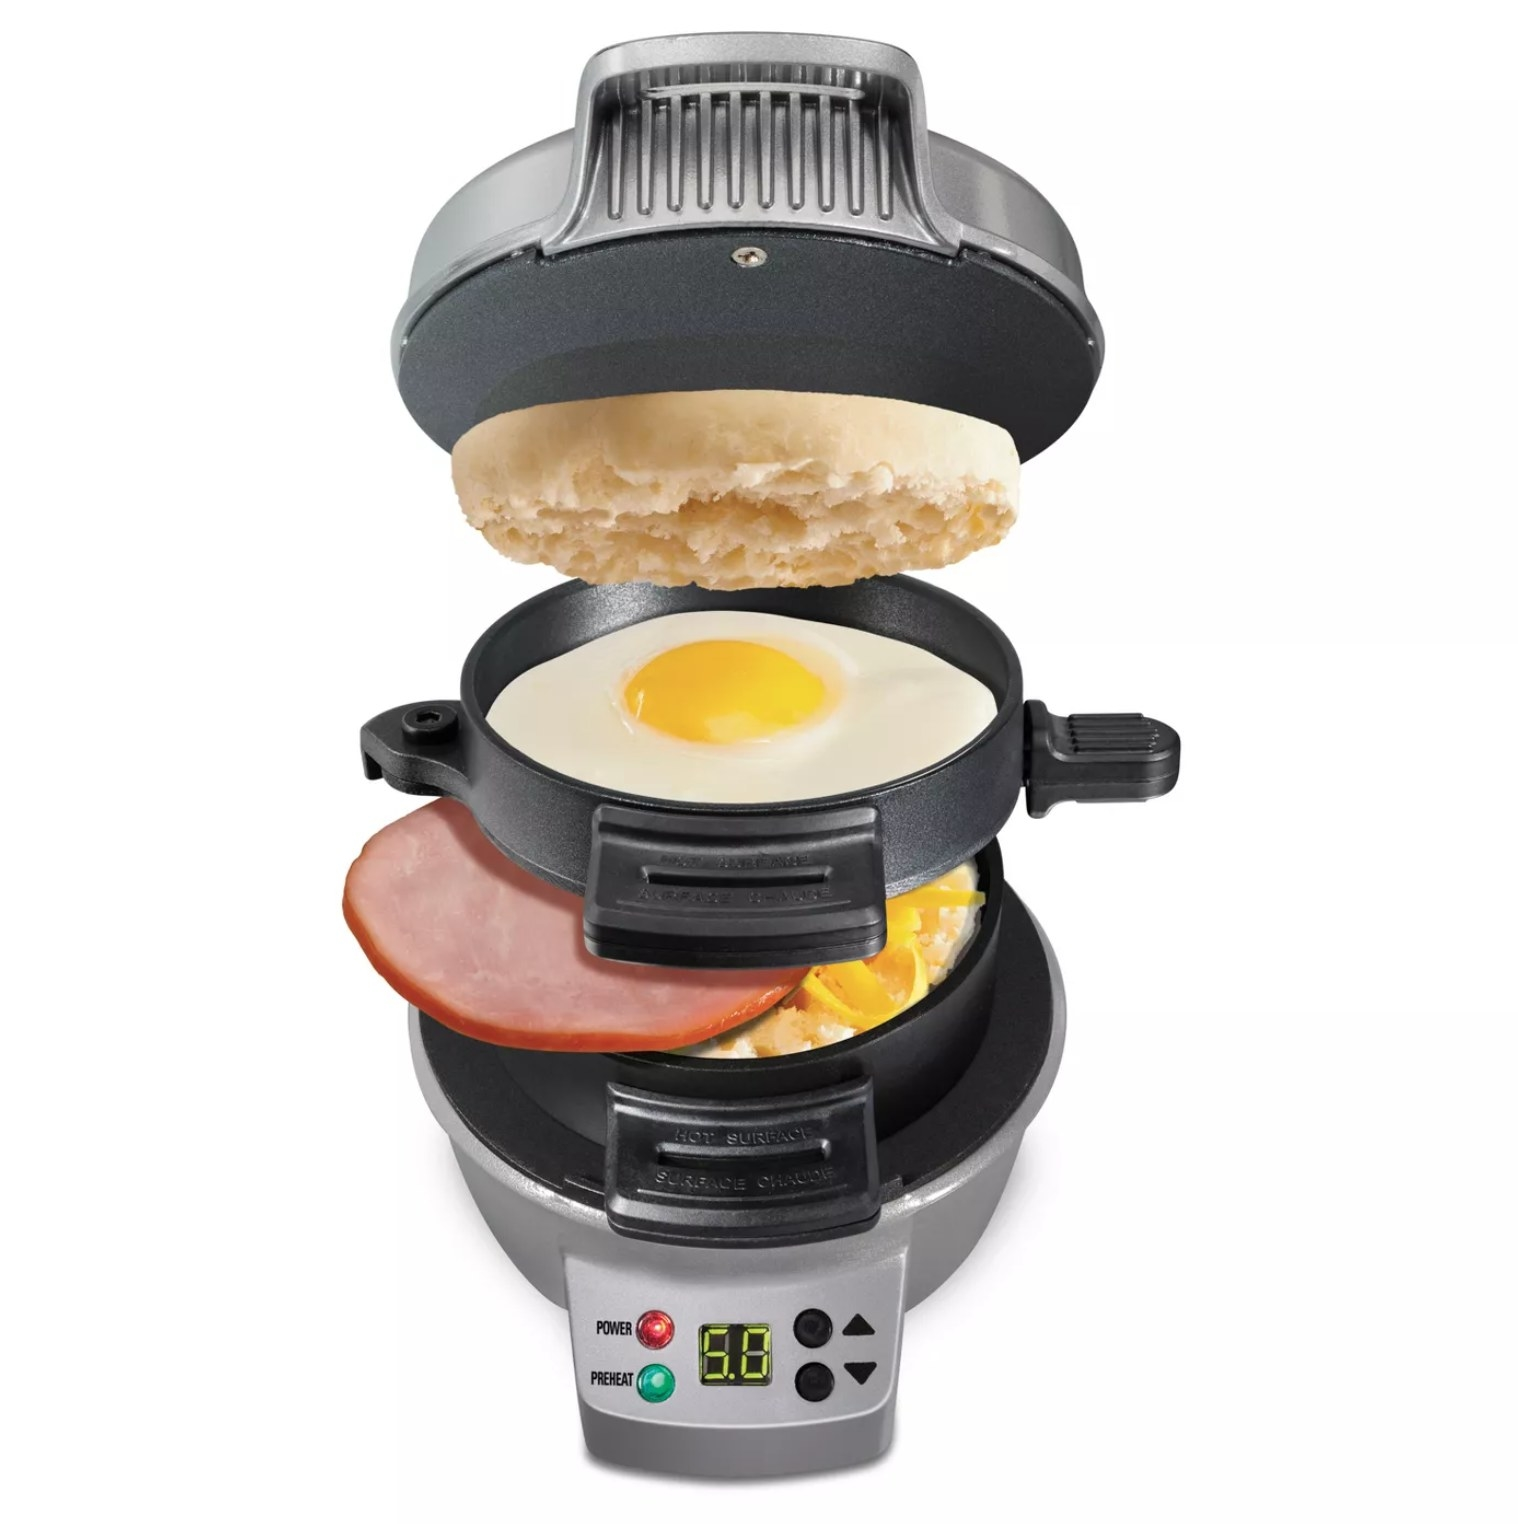 the sandwich maker with an english muffin, egg, ham slice, and cheese in the appliance